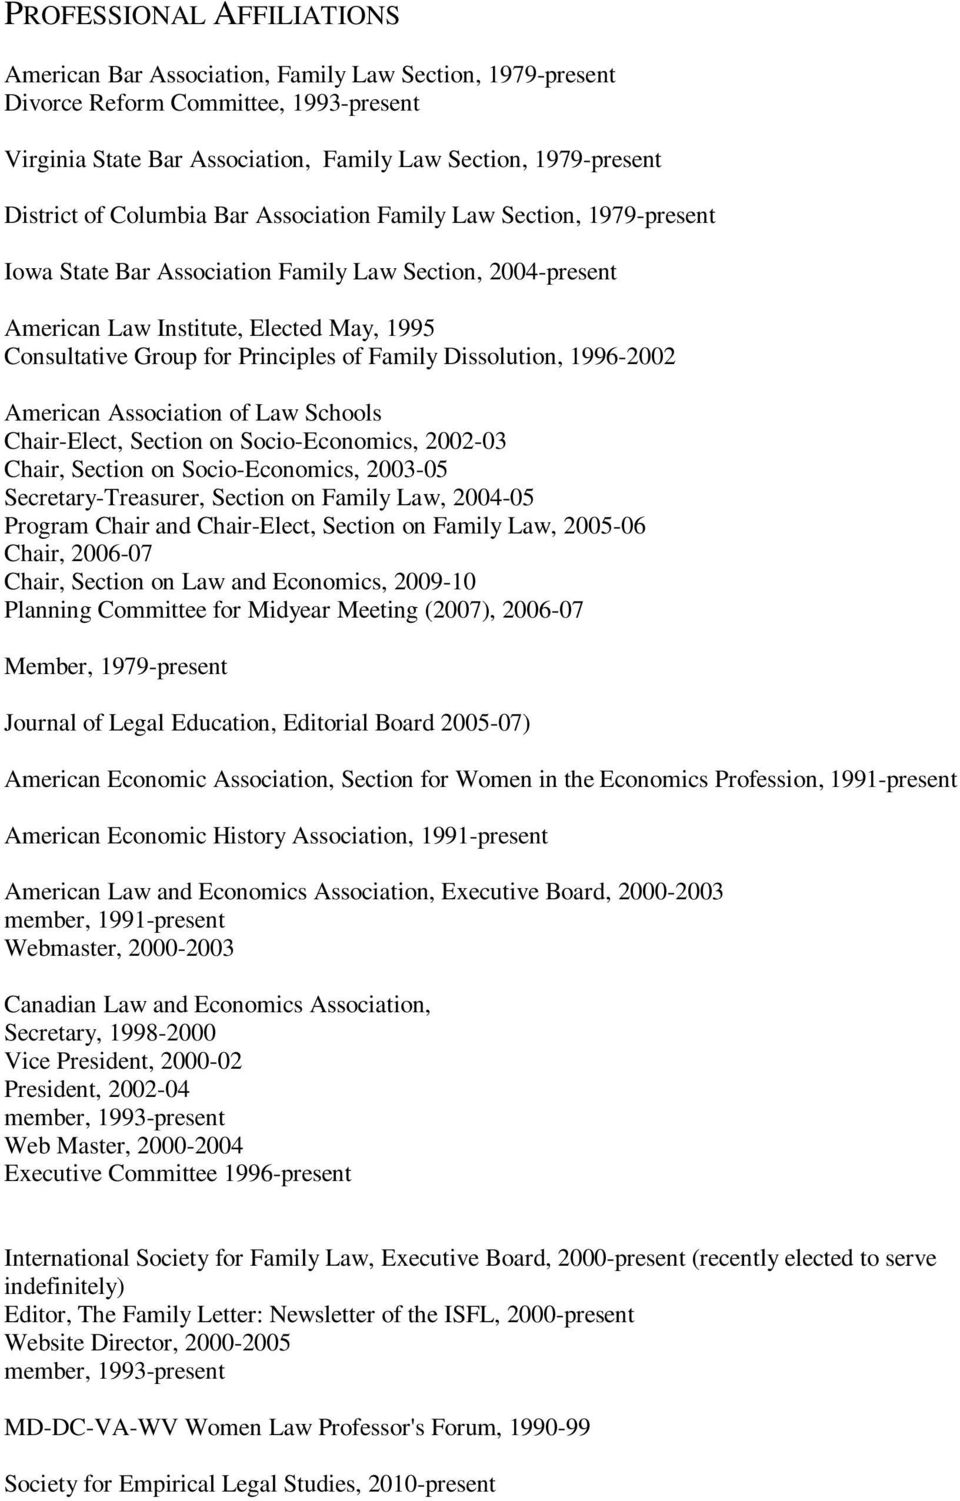 Family Dissolution, 1996-2002 American Association of Law Schools Chair-Elect, Section on Socio-Economics, 2002-03 Chair, Section on Socio-Economics, 2003-05 Secretary-Treasurer, Section on Family